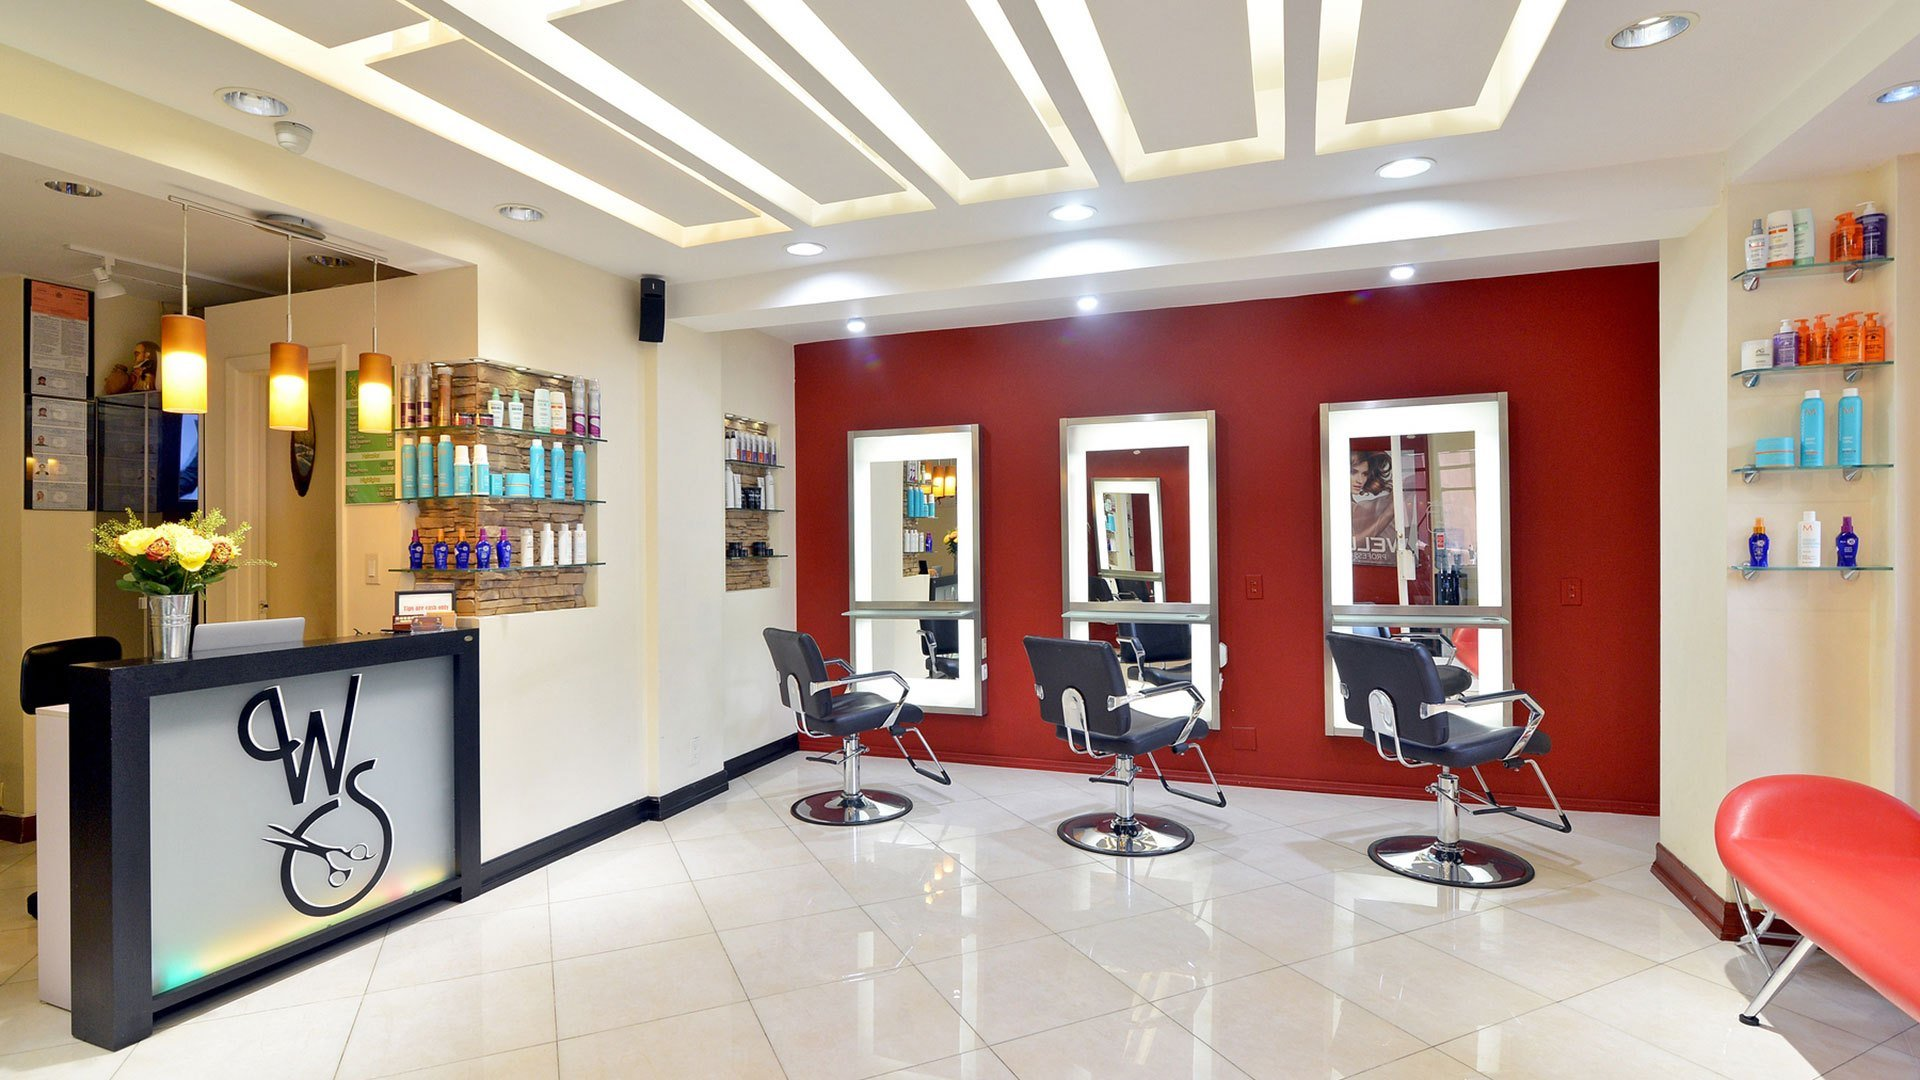 The Best Washington Square Hairstyling Full Service Beauty Salon Pictures